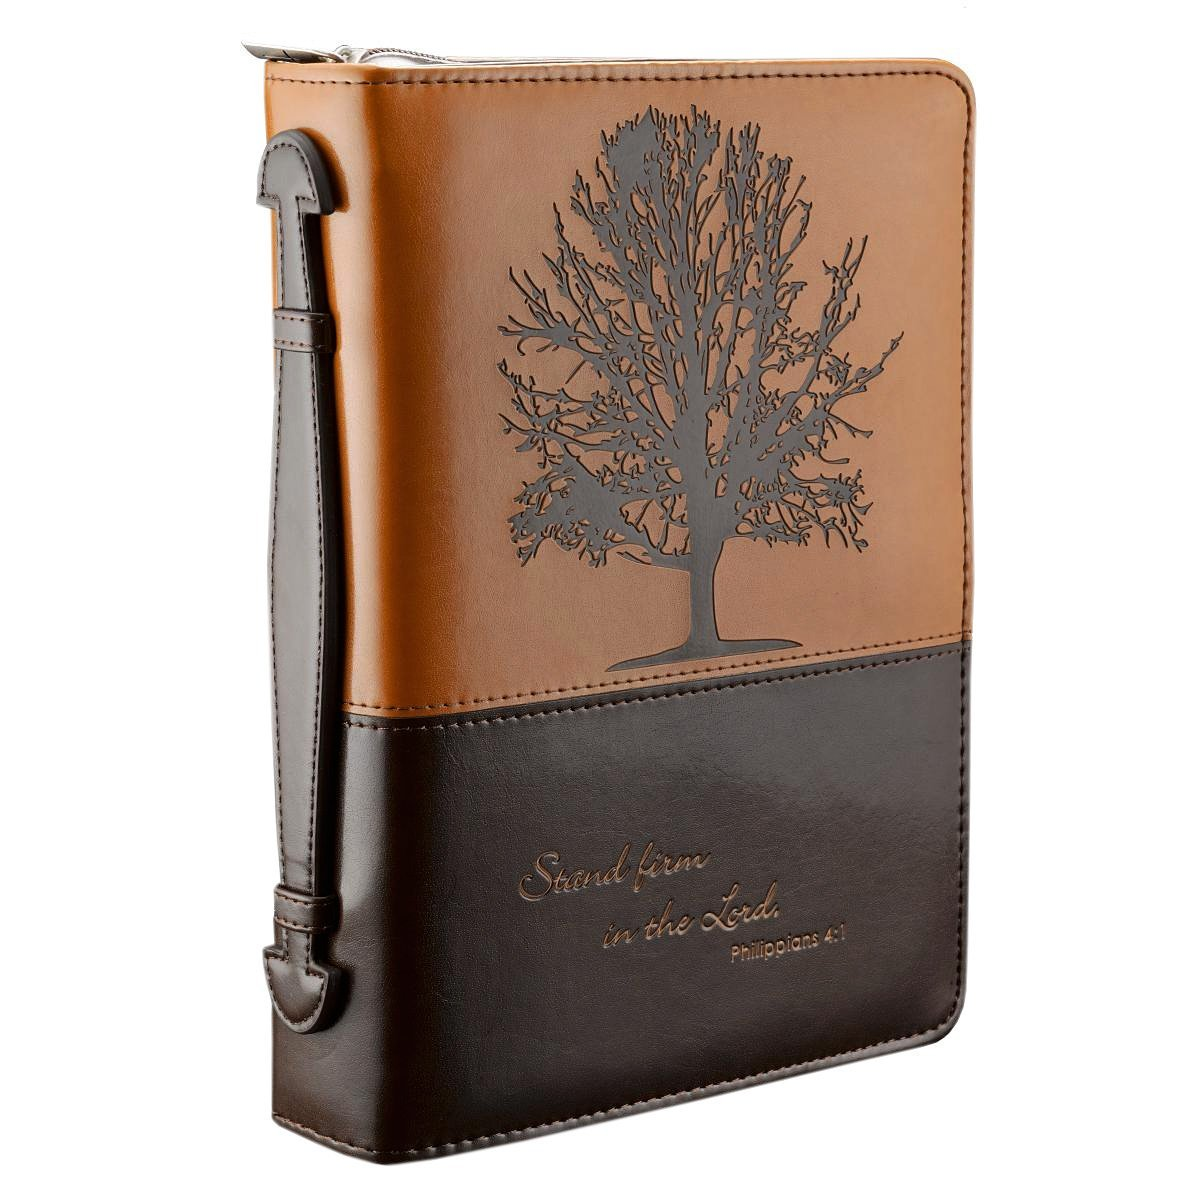 "wholesale leather bible cover,leather book cover of the bible for "" Stand firm in the Lord"""